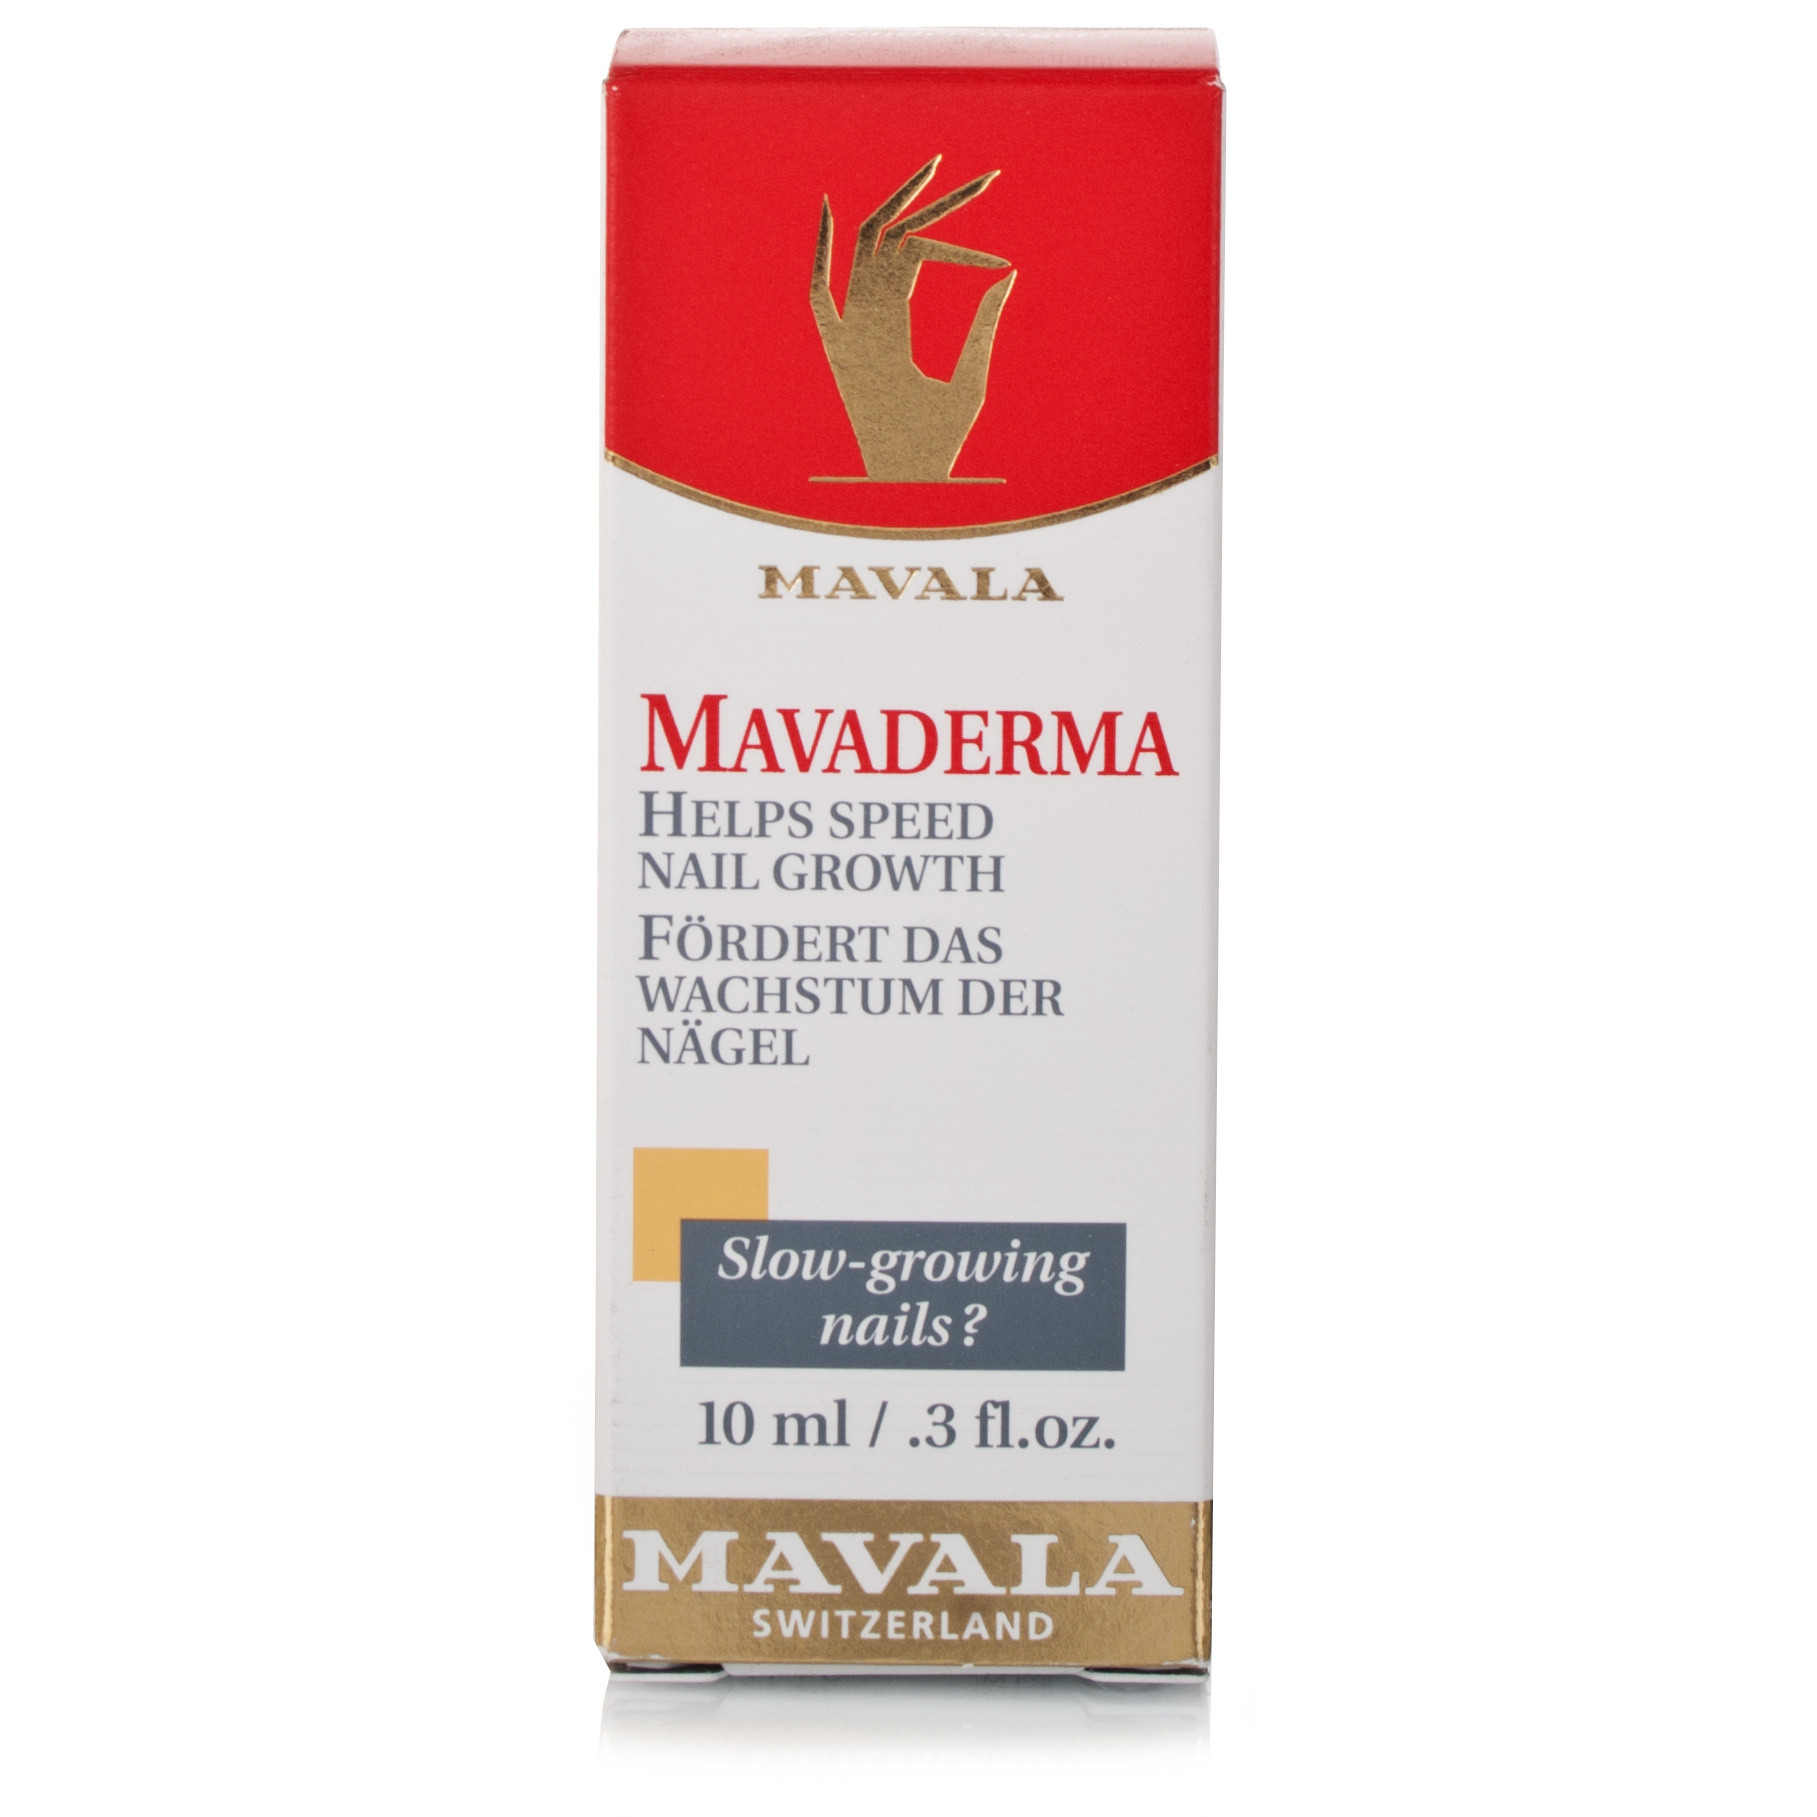 Mavala Mavaderma Nail Growth Stimulant